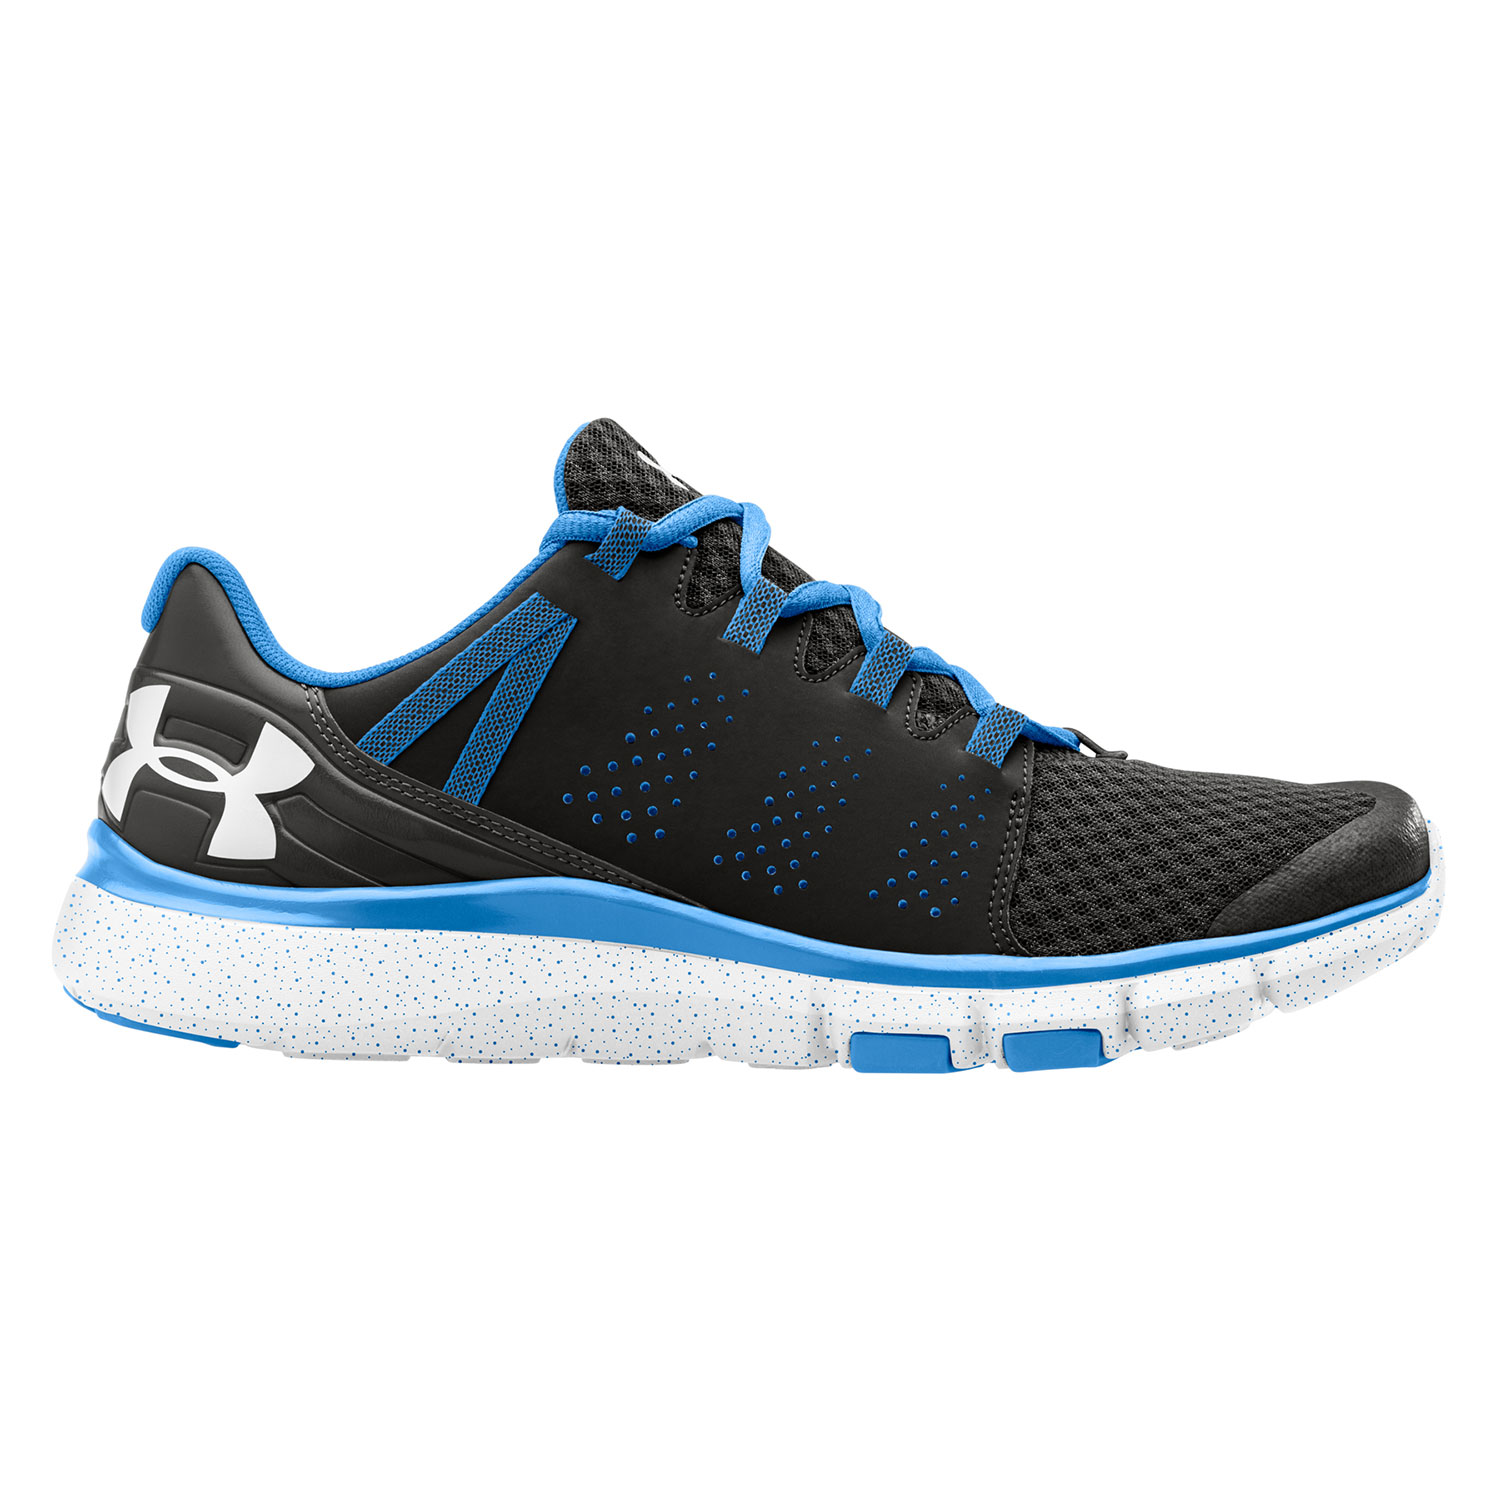 Under Armour Micro G Limitless Trainers